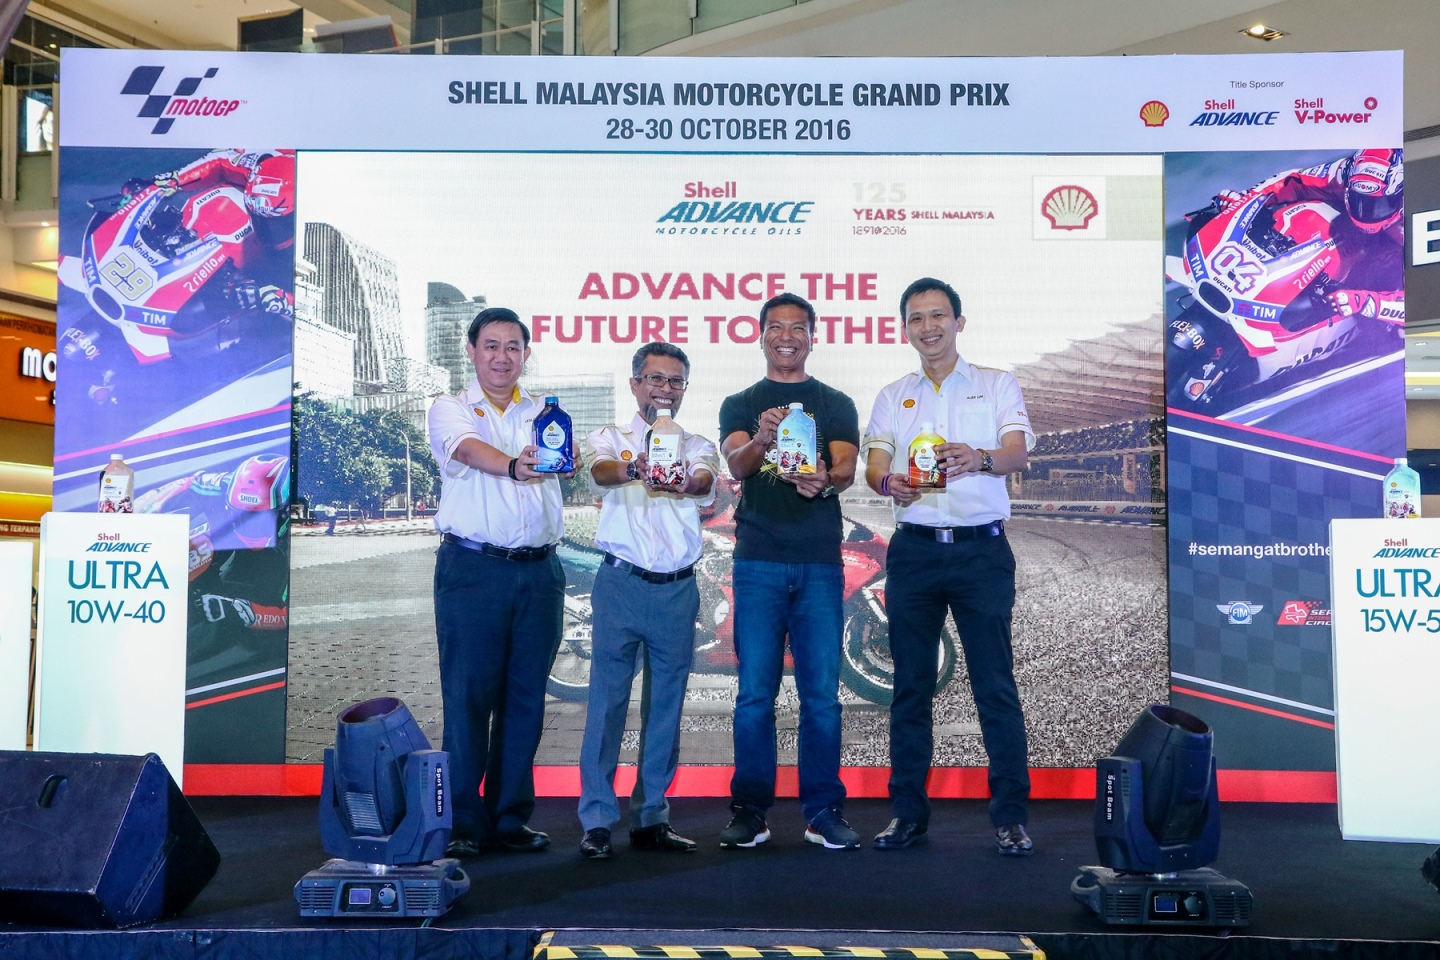 Shell Advance limited edition motorcycle oil designs revealed – chance to win Malaysia MotoGP ...